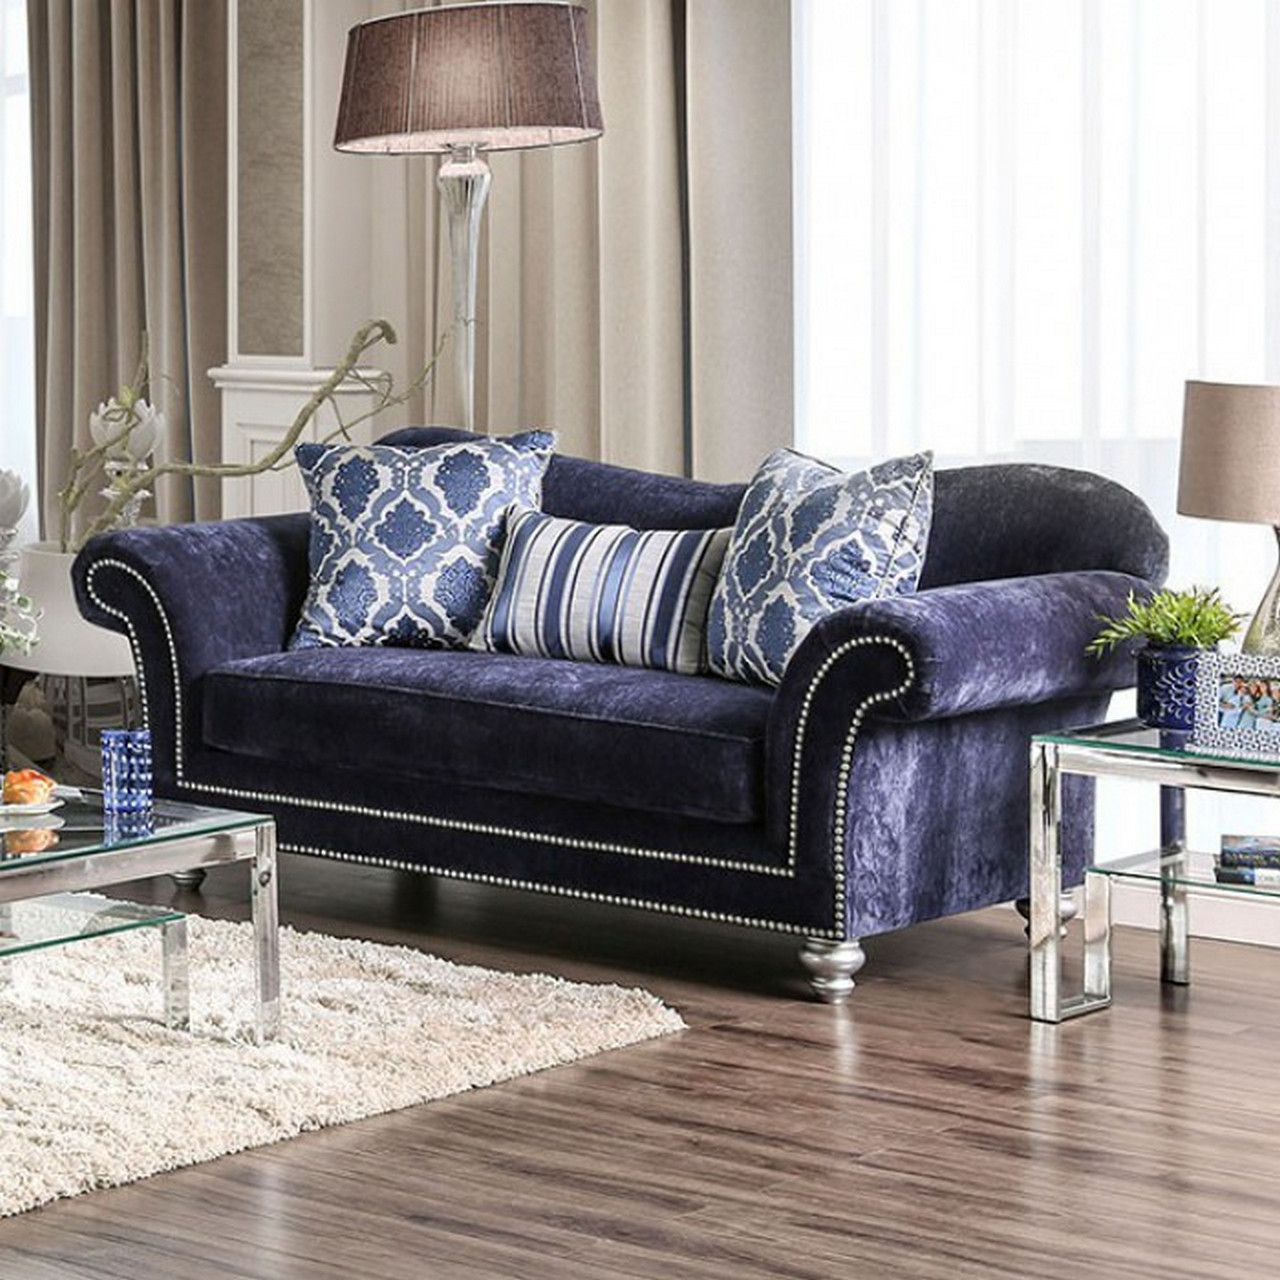 rolled arm sofa with nailhead trim cheapest leather corner sofas uk eleanor transitional navy blue microfiber set w